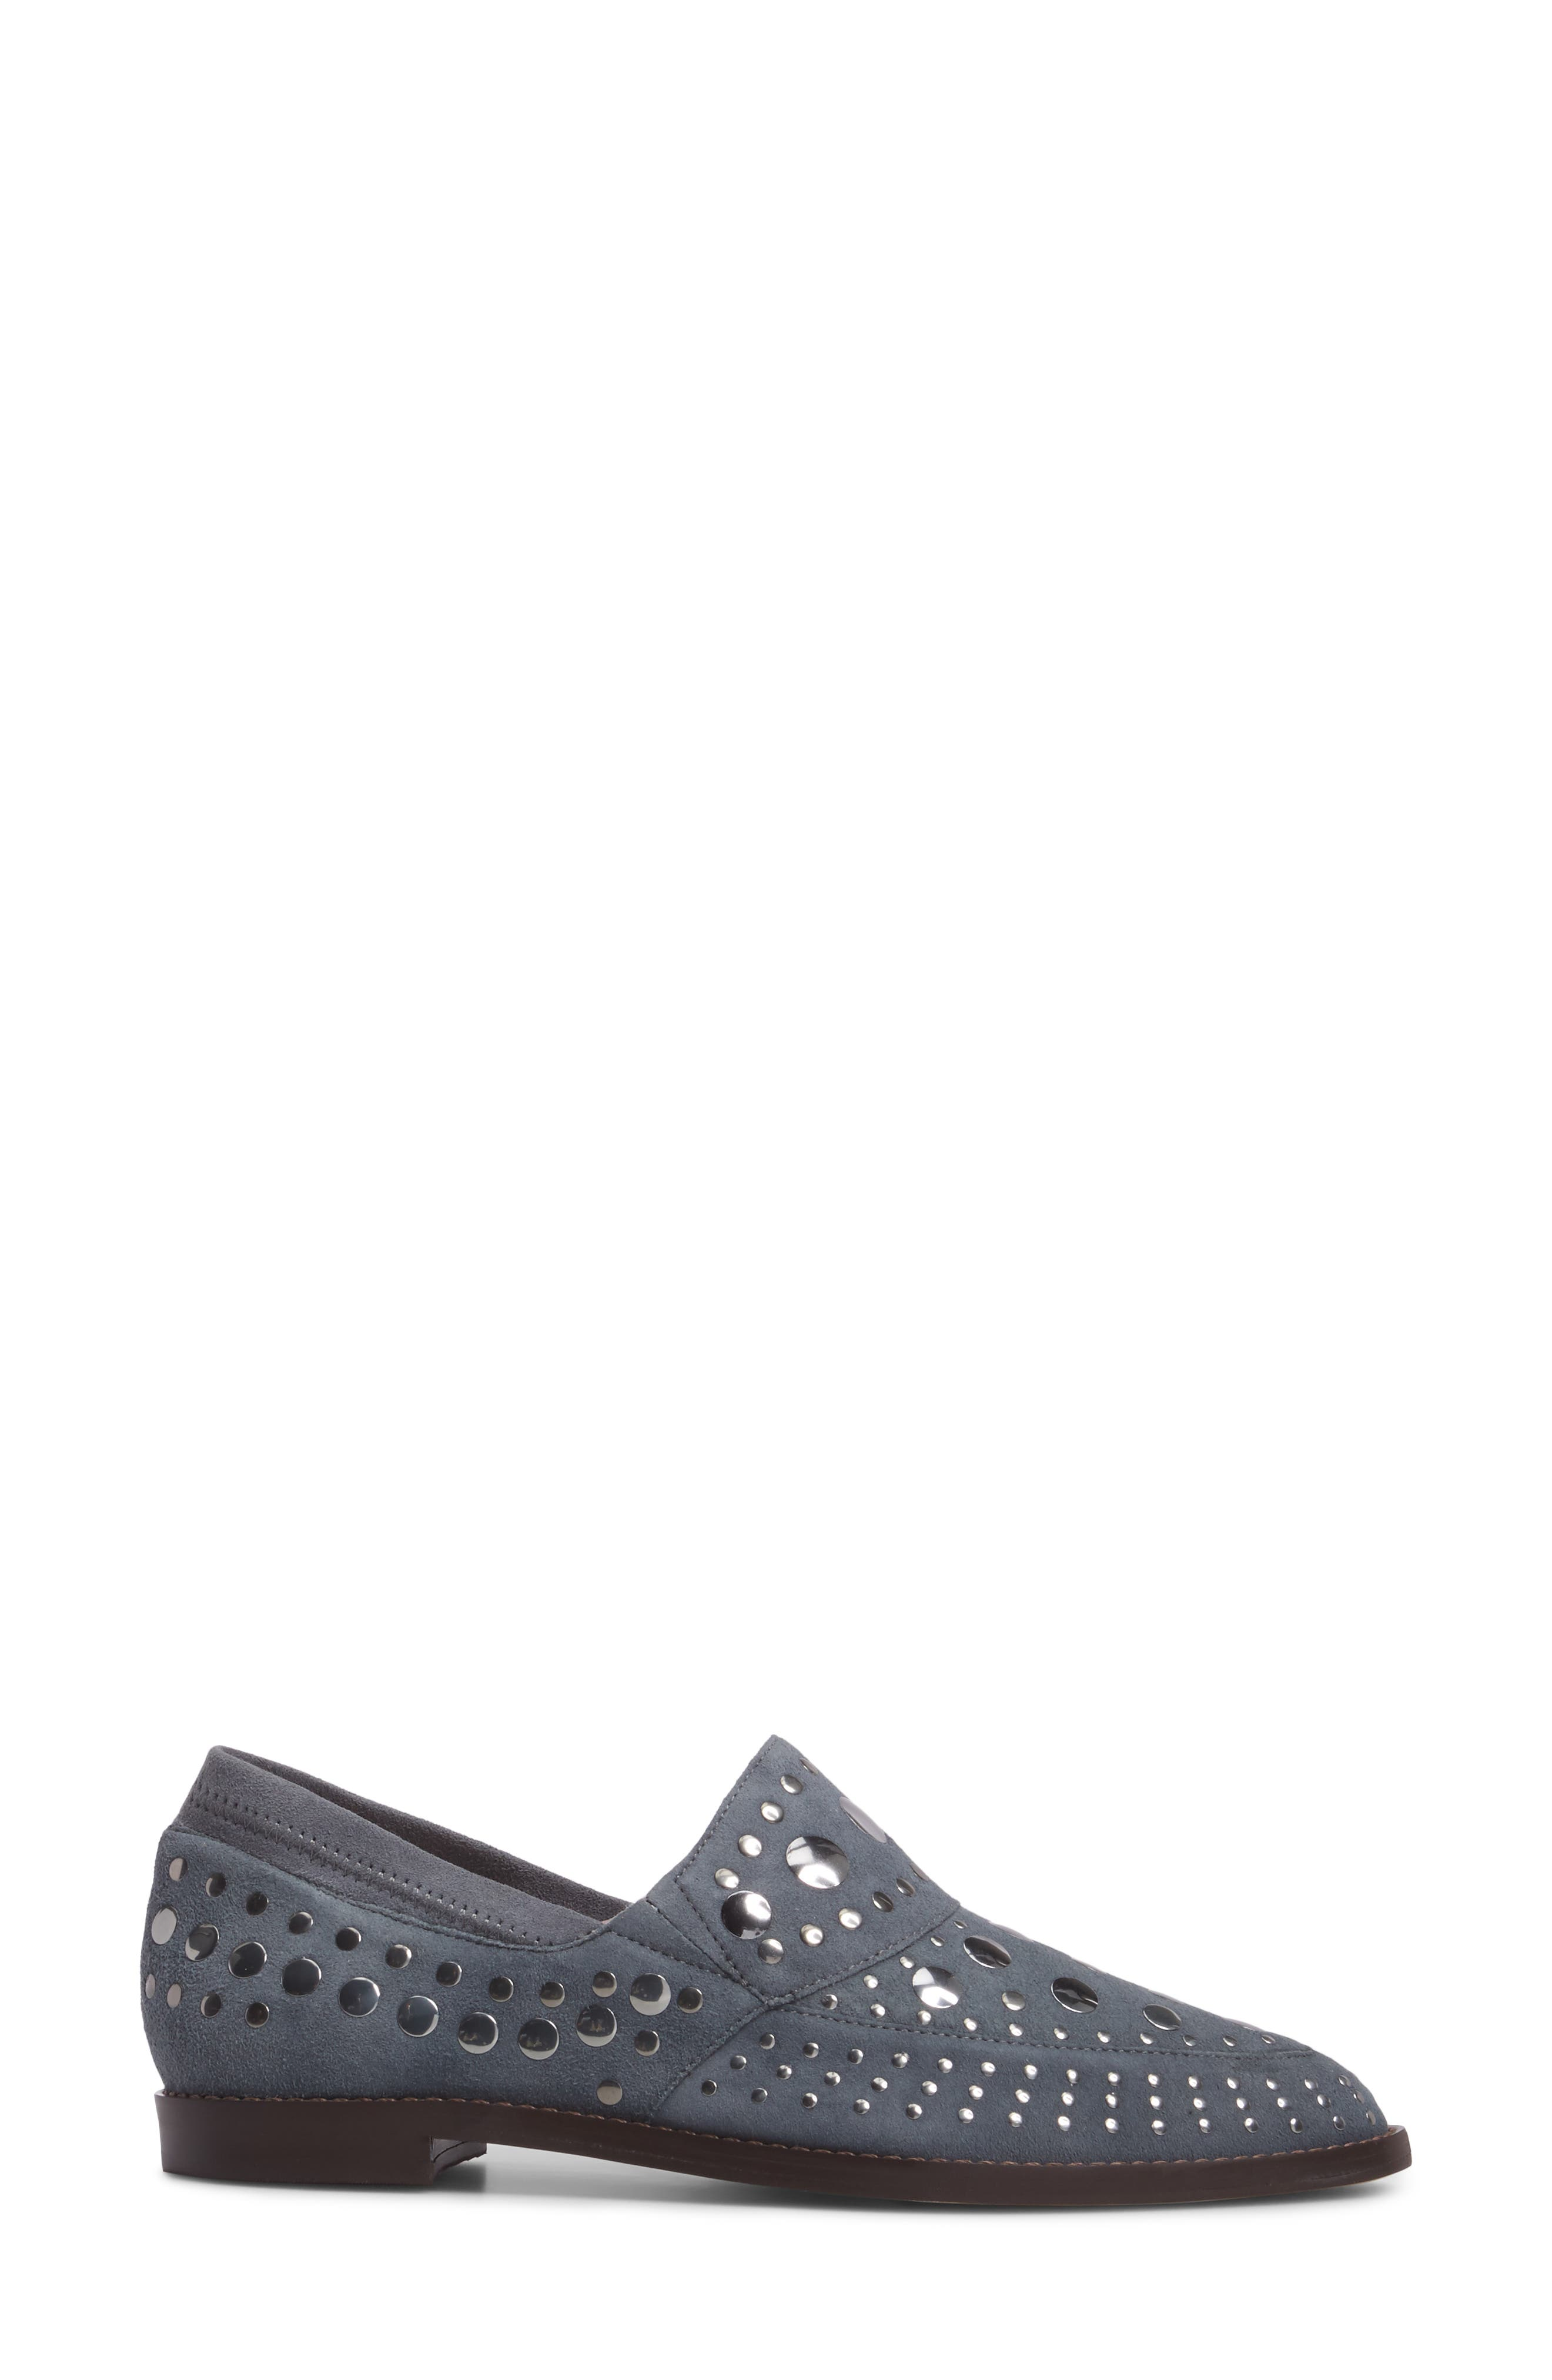 Ping Studded Loafer,                             Alternate thumbnail 8, color,